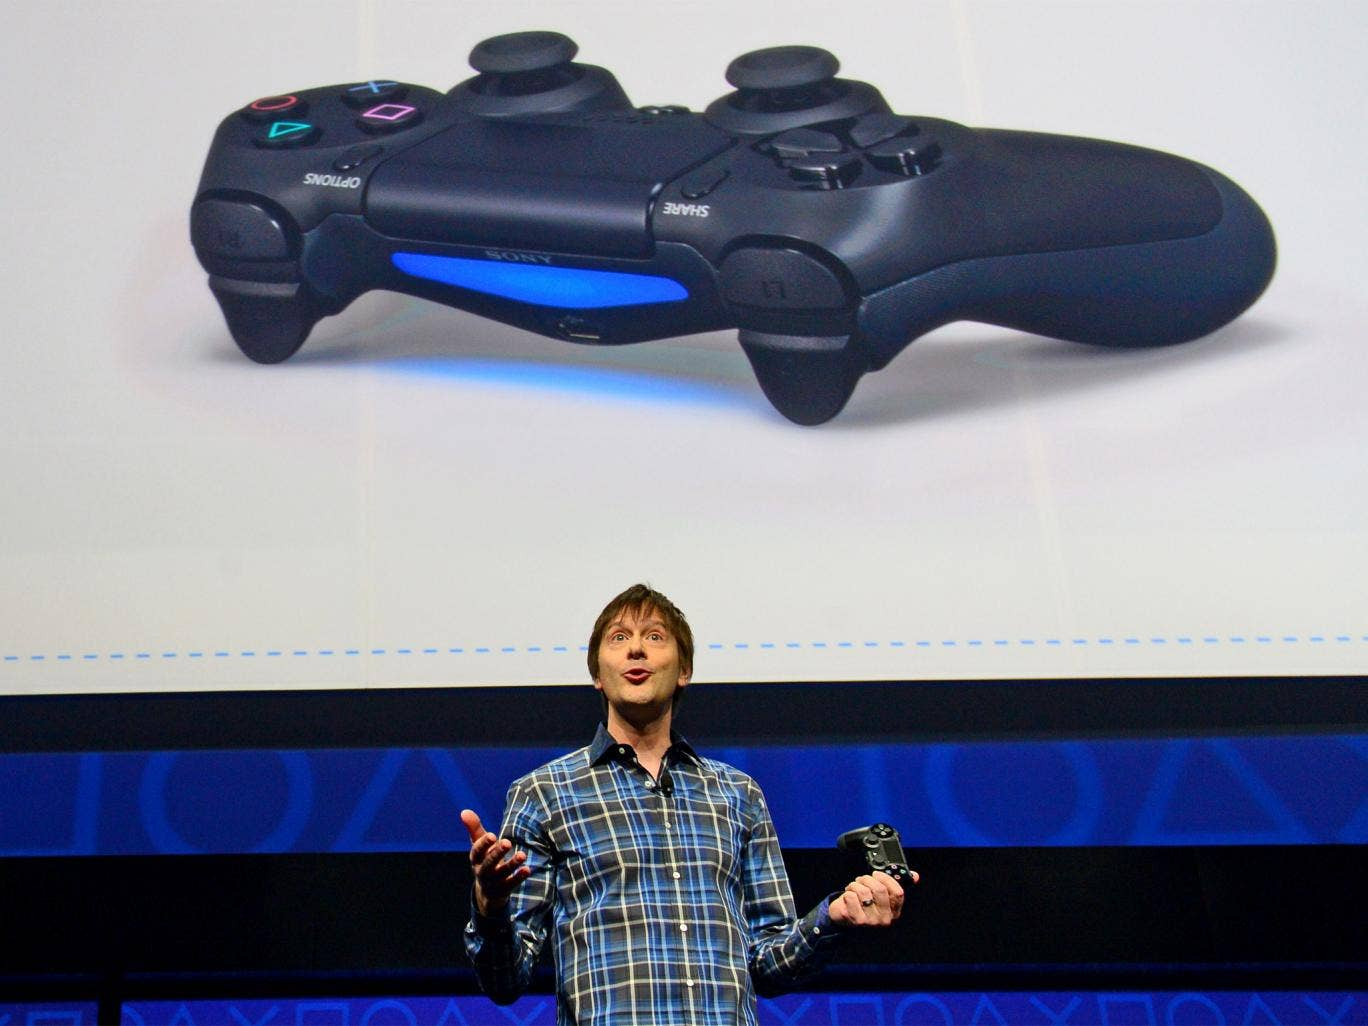 Video game designer Mark Cerny talks about the new controler Bioshock 4 as Sony introduces the PlayStation 4